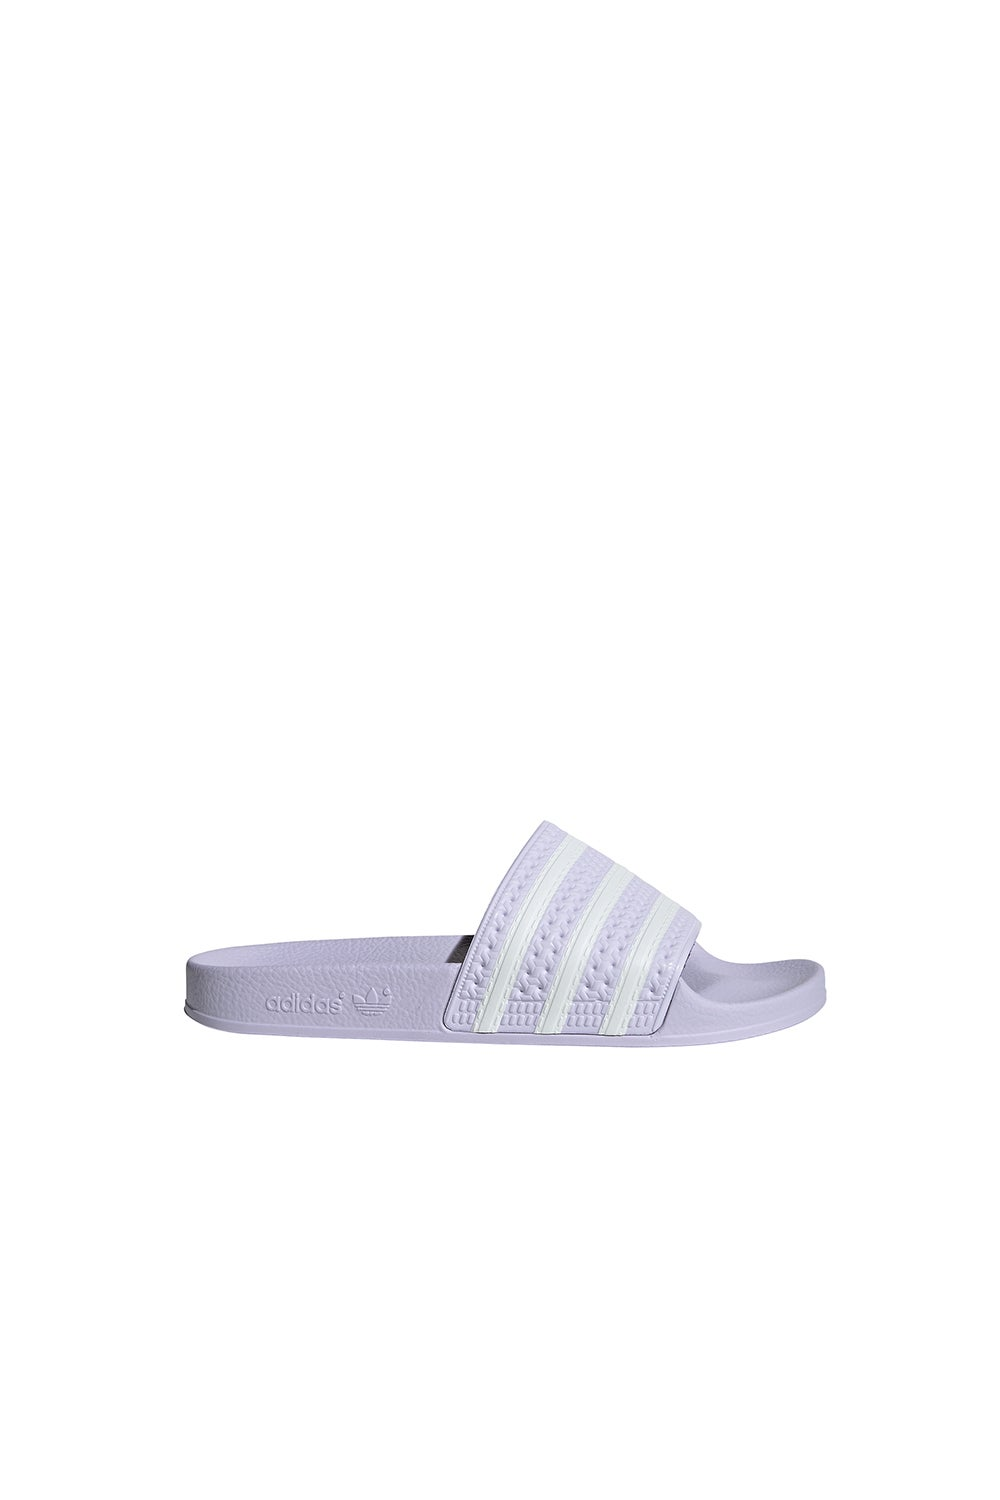 adidas Adilette Slides W Purple